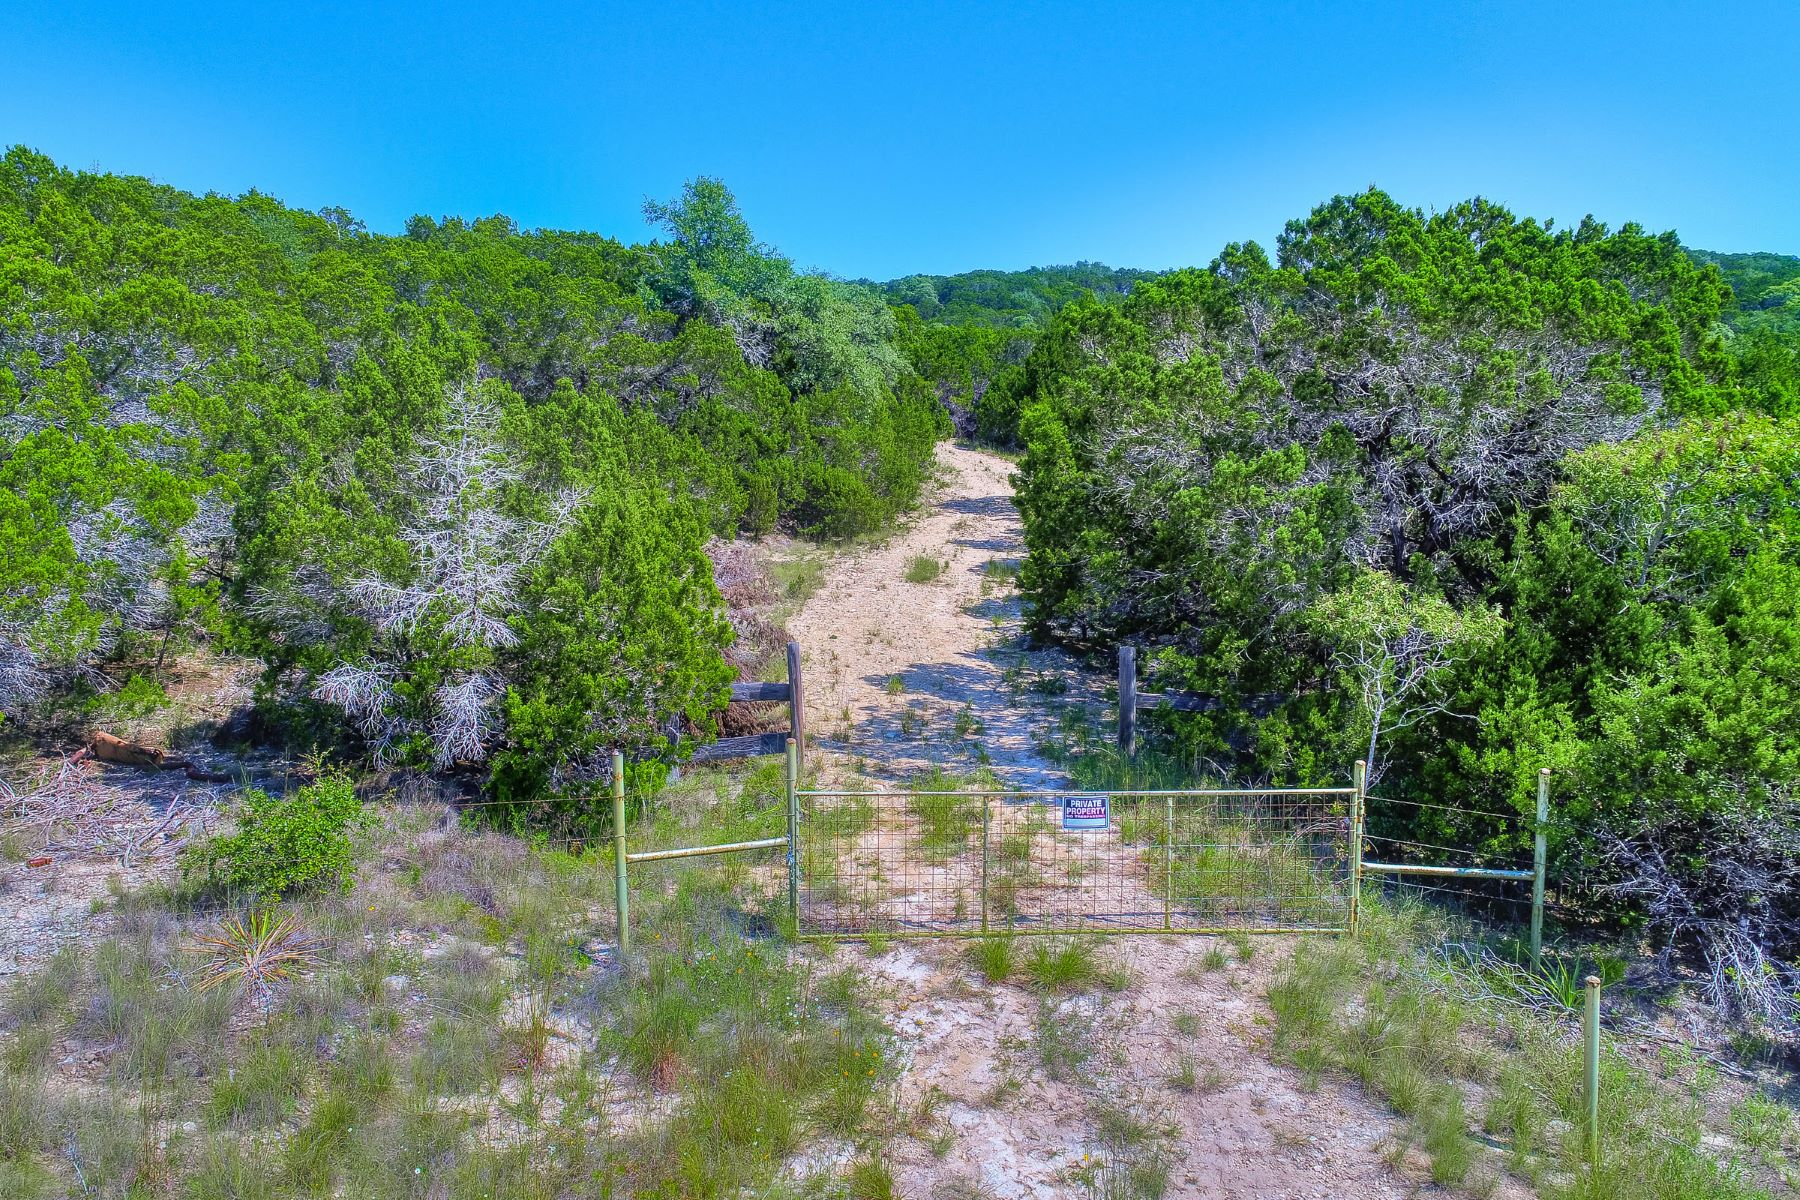 Additional photo for property listing at Development or Ranch Estate Opportunity 00 F M Road 1431 Leander, Texas 78641 United States